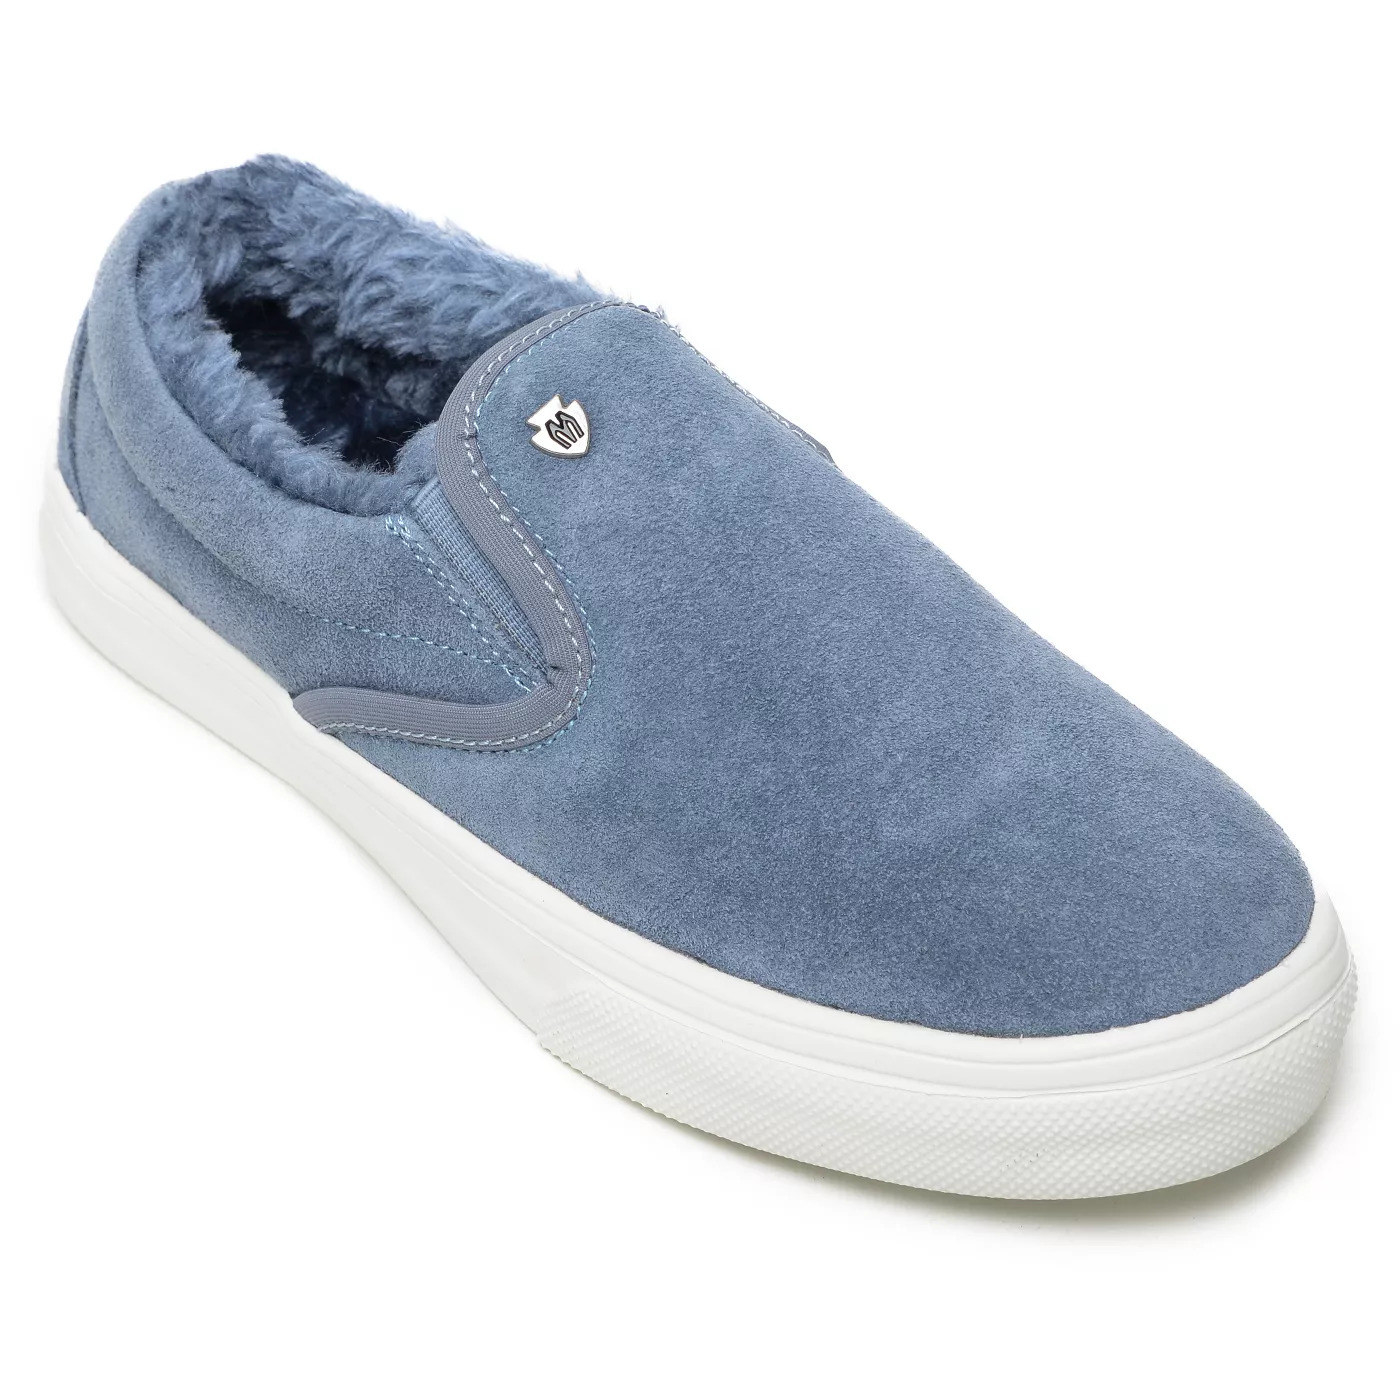 A sky blue suede upper with furry sky blue lining inside of the shoe and a white rubber sole